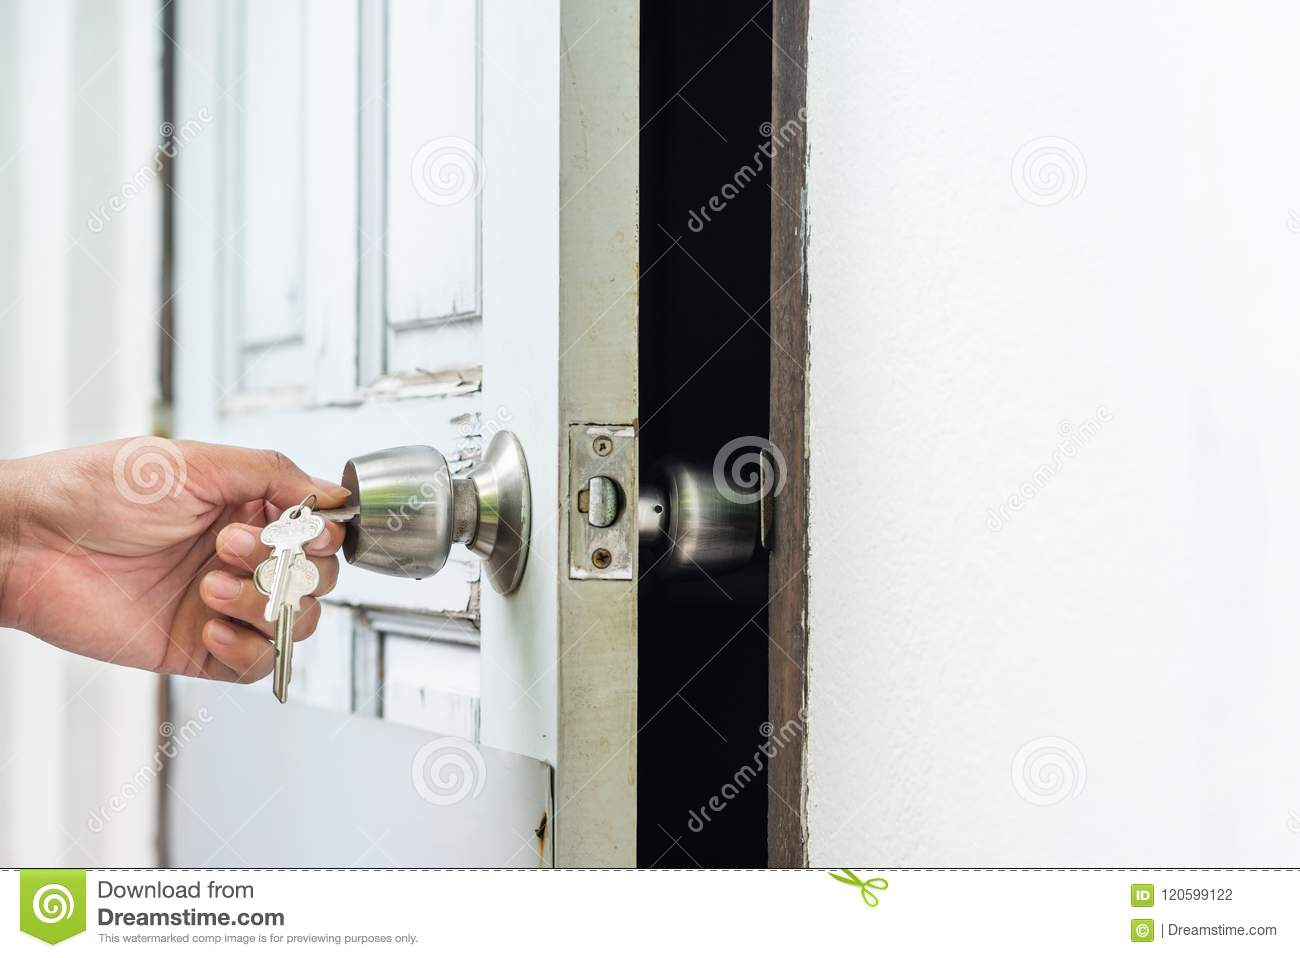 Unlocking And Opening Door With Key Stock Photo - Image of